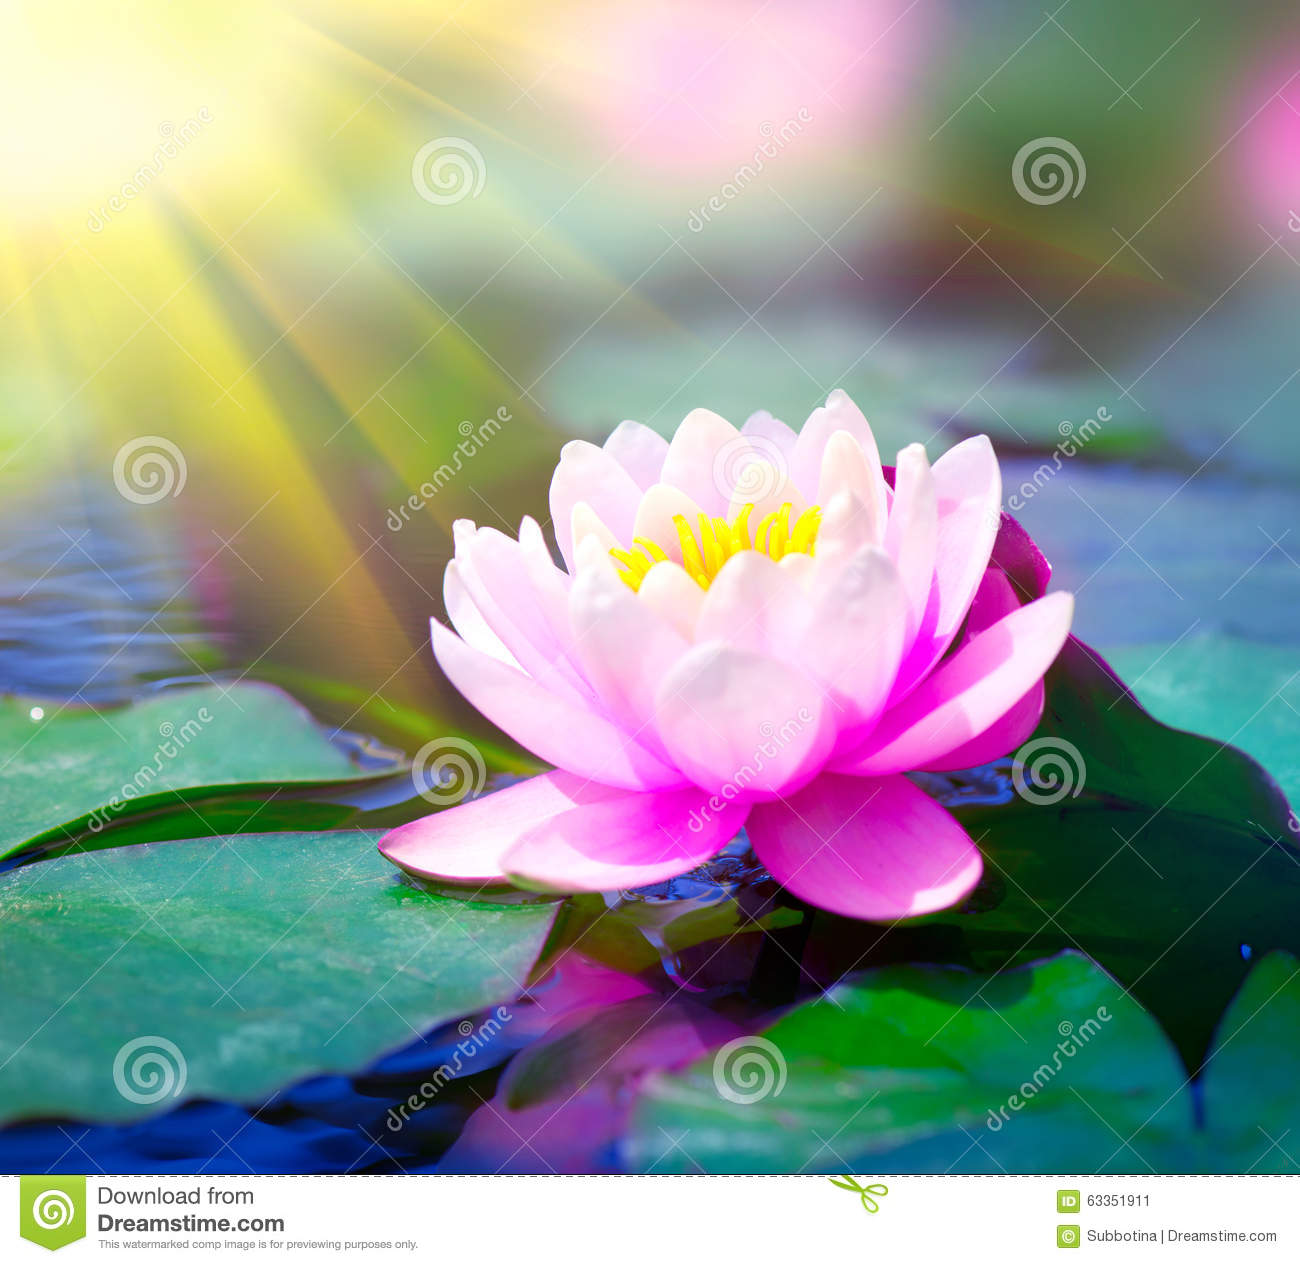 Water lily in a pond lotus flower stock image image of plant download water lily in a pond lotus flower stock image image of plant izmirmasajfo